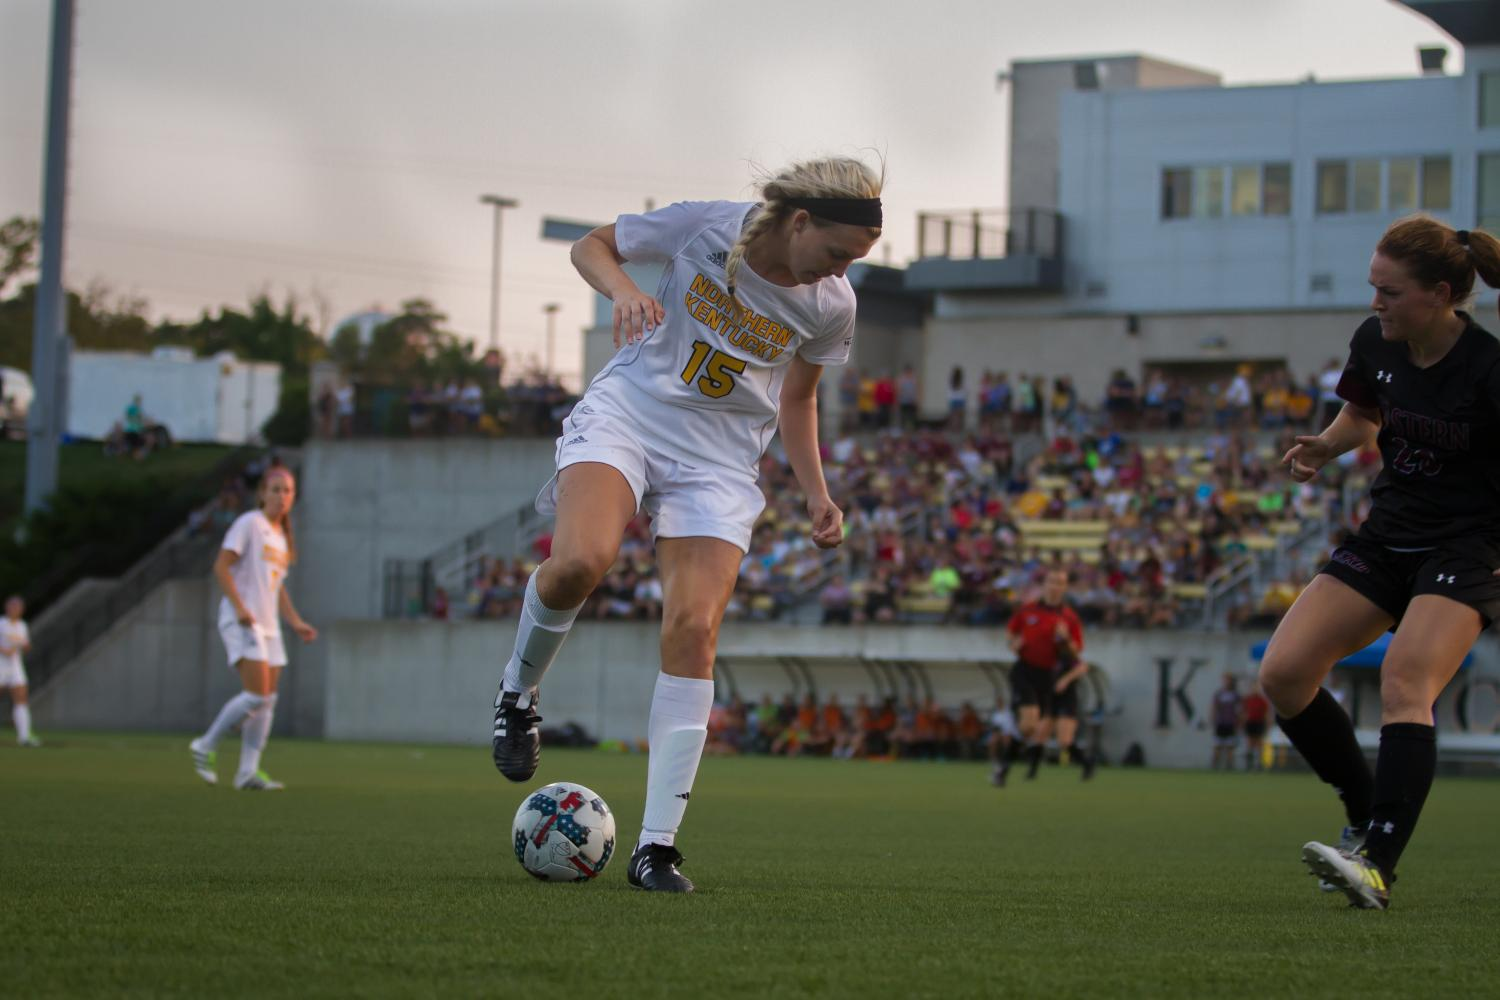 Kailey Ivins got the start in the midfield for the Norse against EKU